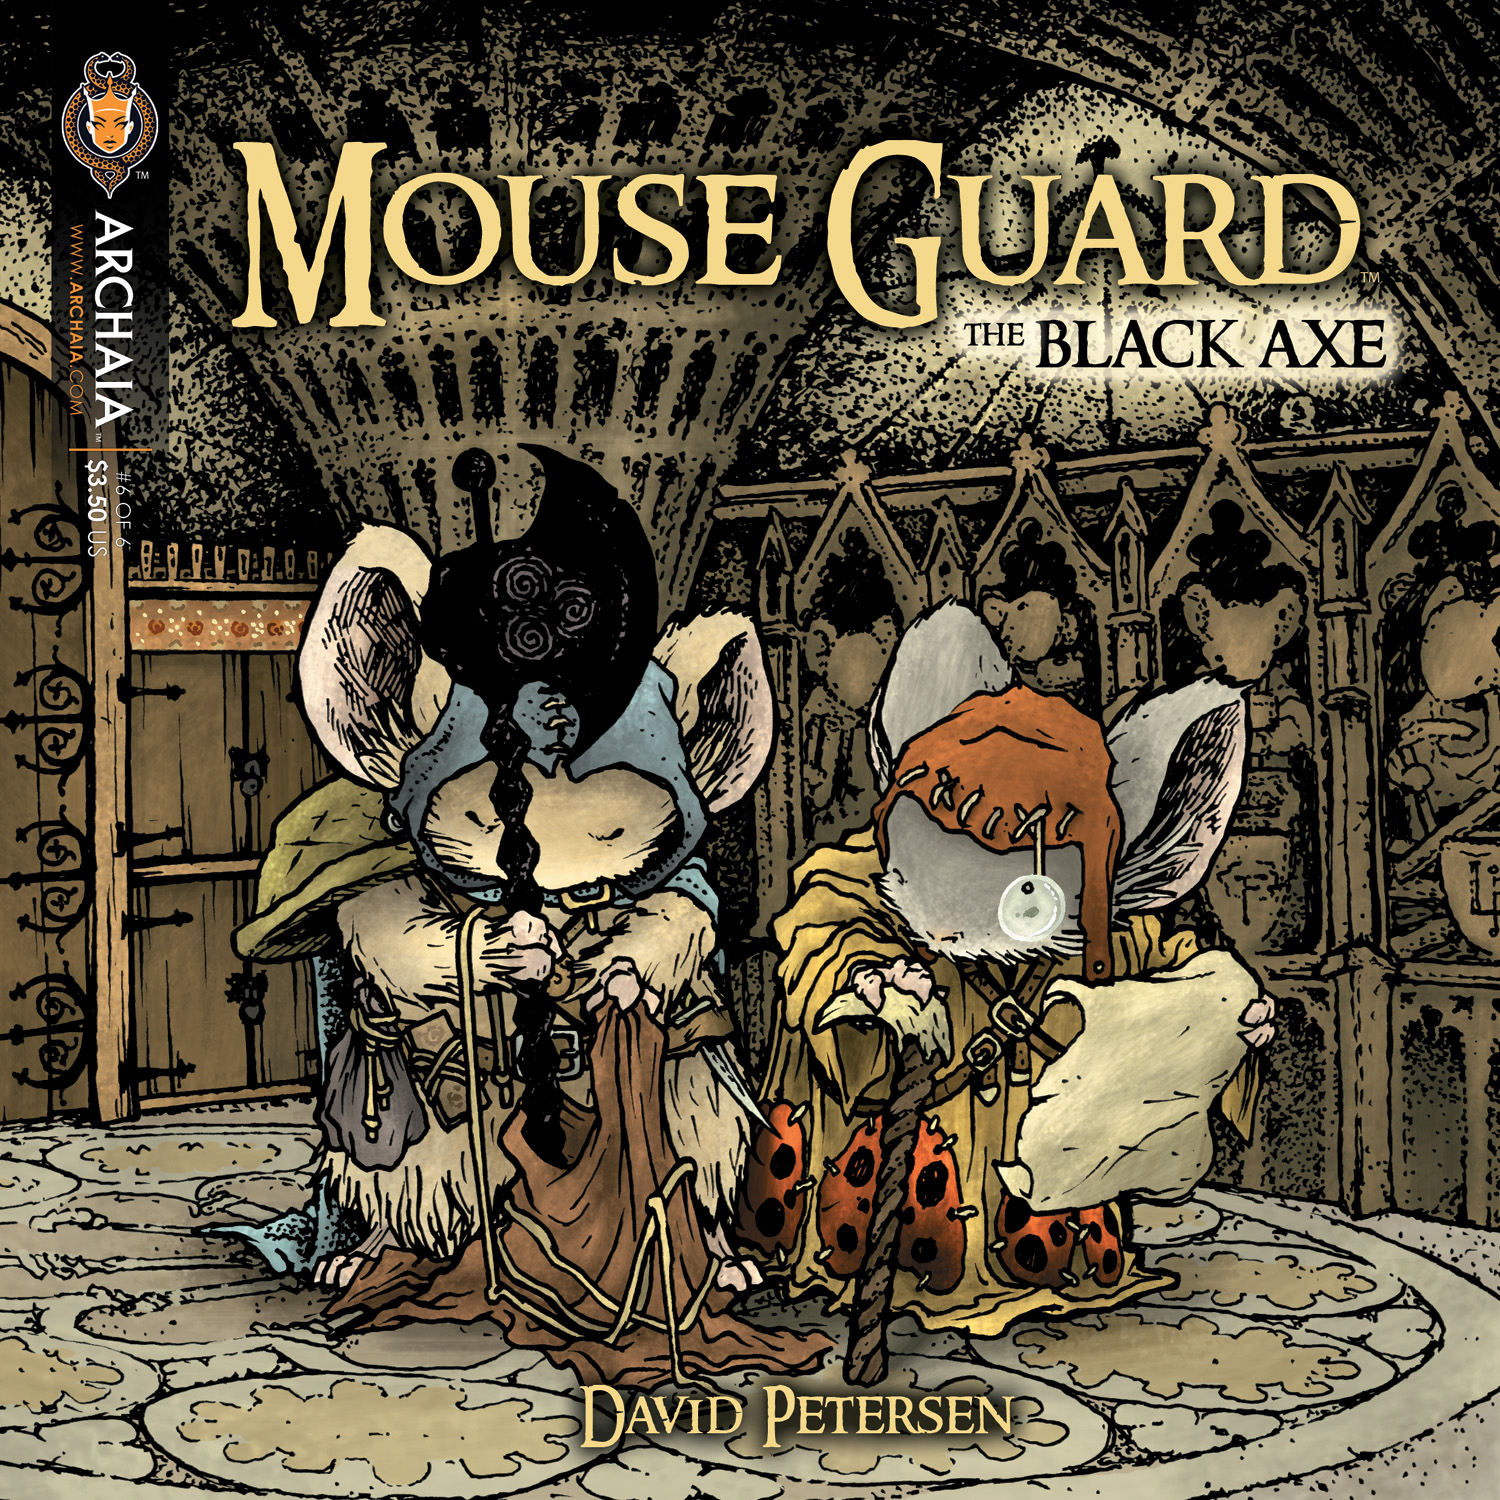 Mouse Guard: The Black Axe #6 (of 6) Writer & Artist: David Petersen Publisher: Archaia Entertainment Price: $3.50 On Sale:...